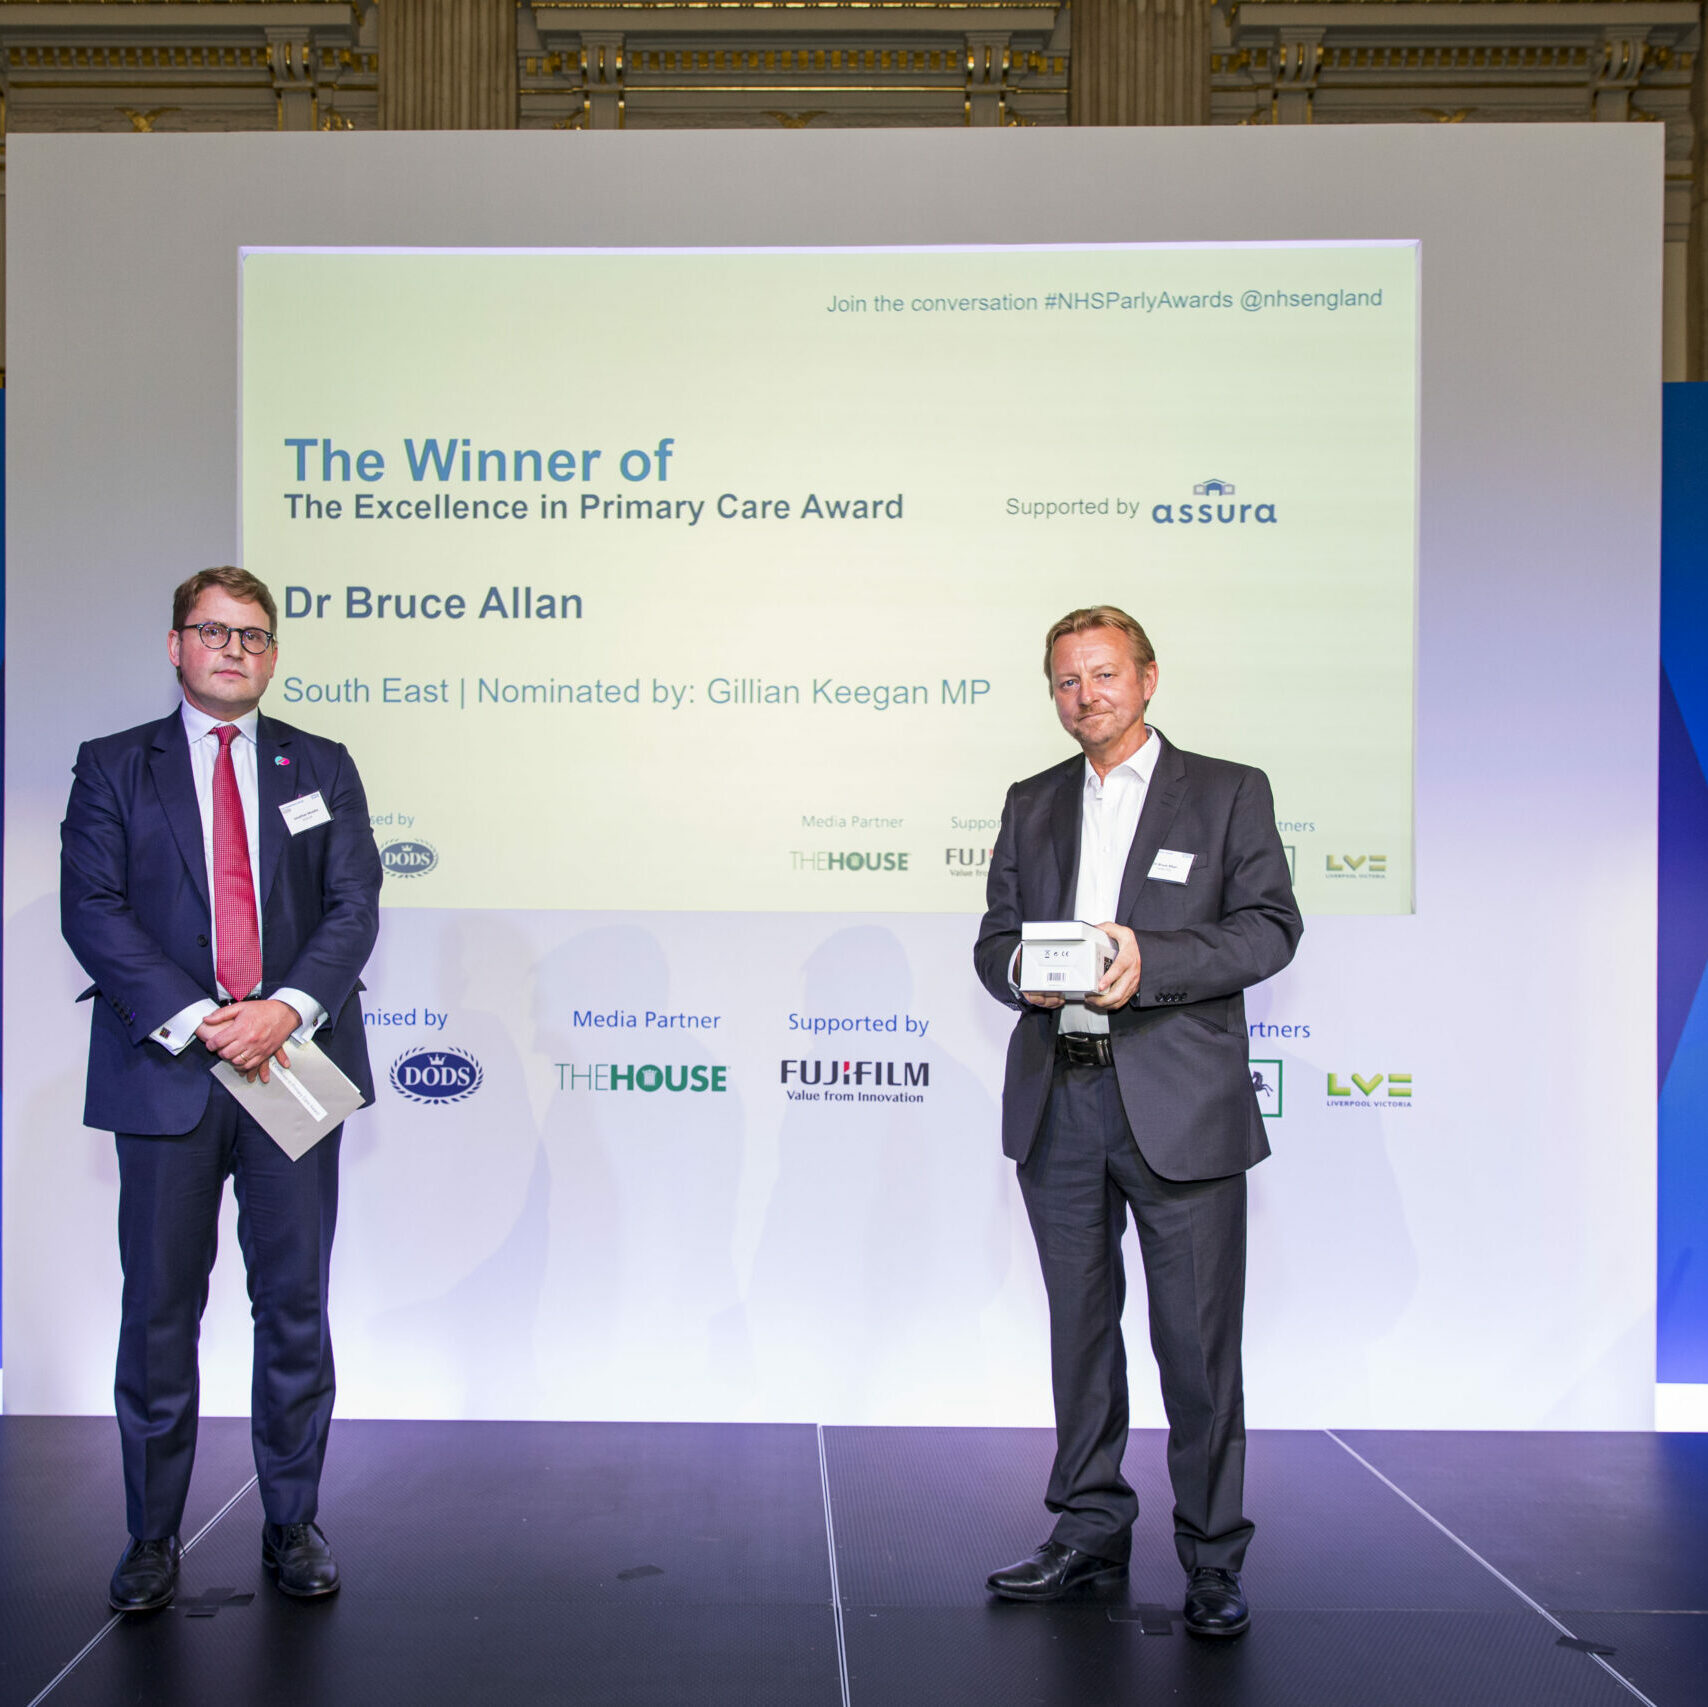 Dr Bruce Allan is stood on a stage and receives The Excellence in Primary Care Award